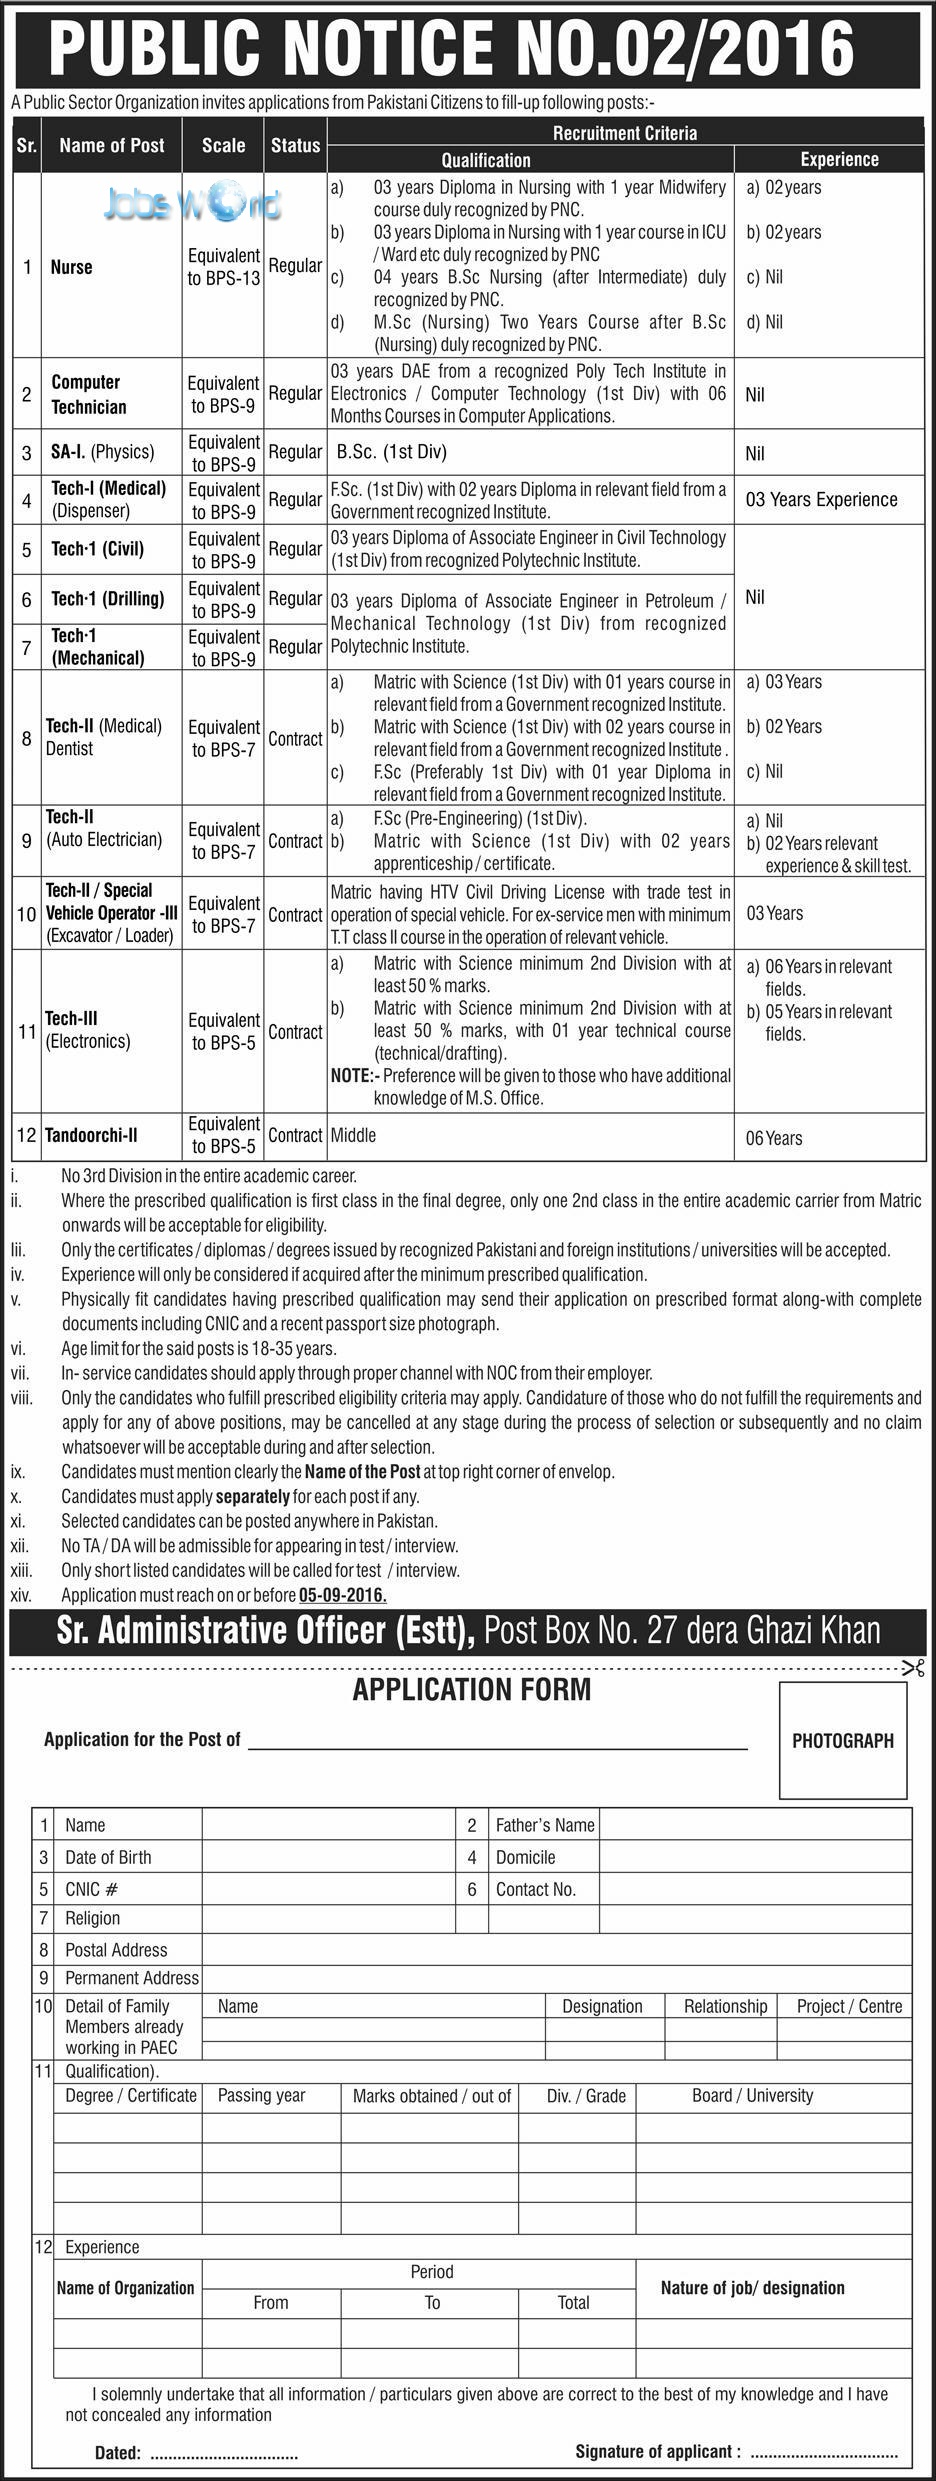 PO Box 27 Jobs 2016 Dera Ghazi Khan PAEC Application Form